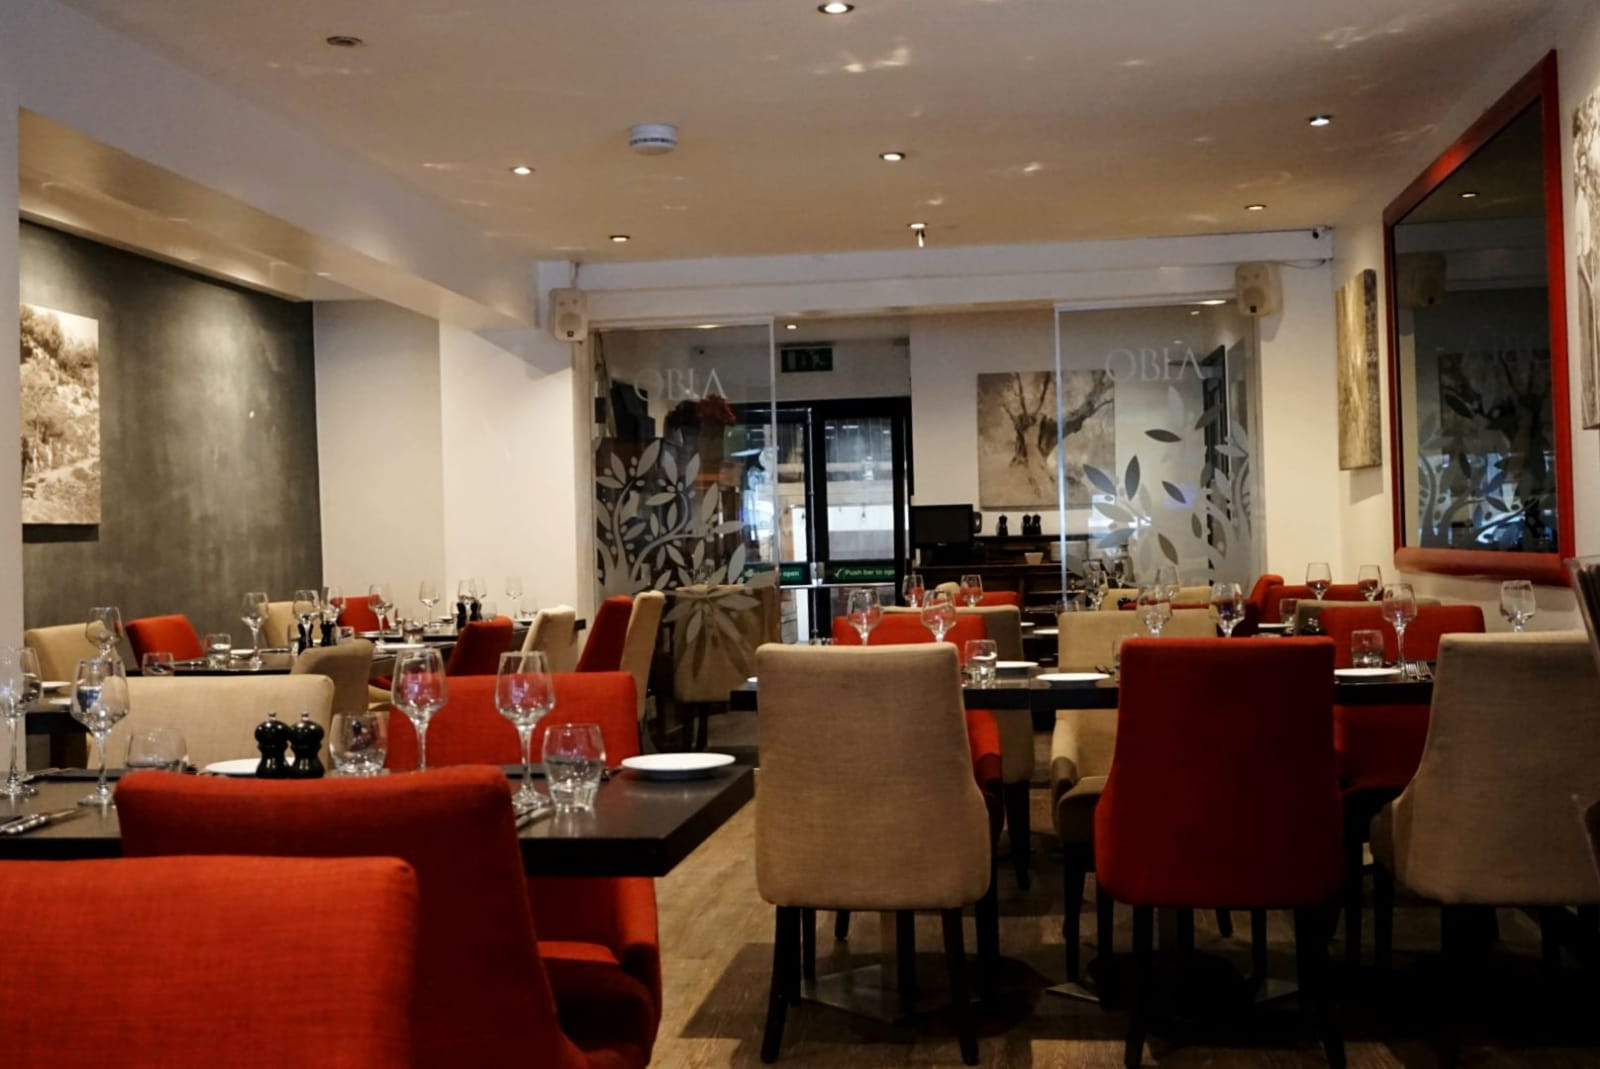 EXCLUSIVE : AT THE EXECUTIVE CHEFS TABLE PAOLO SABA AT THE OBIA RESTAURANT IN PURLEY